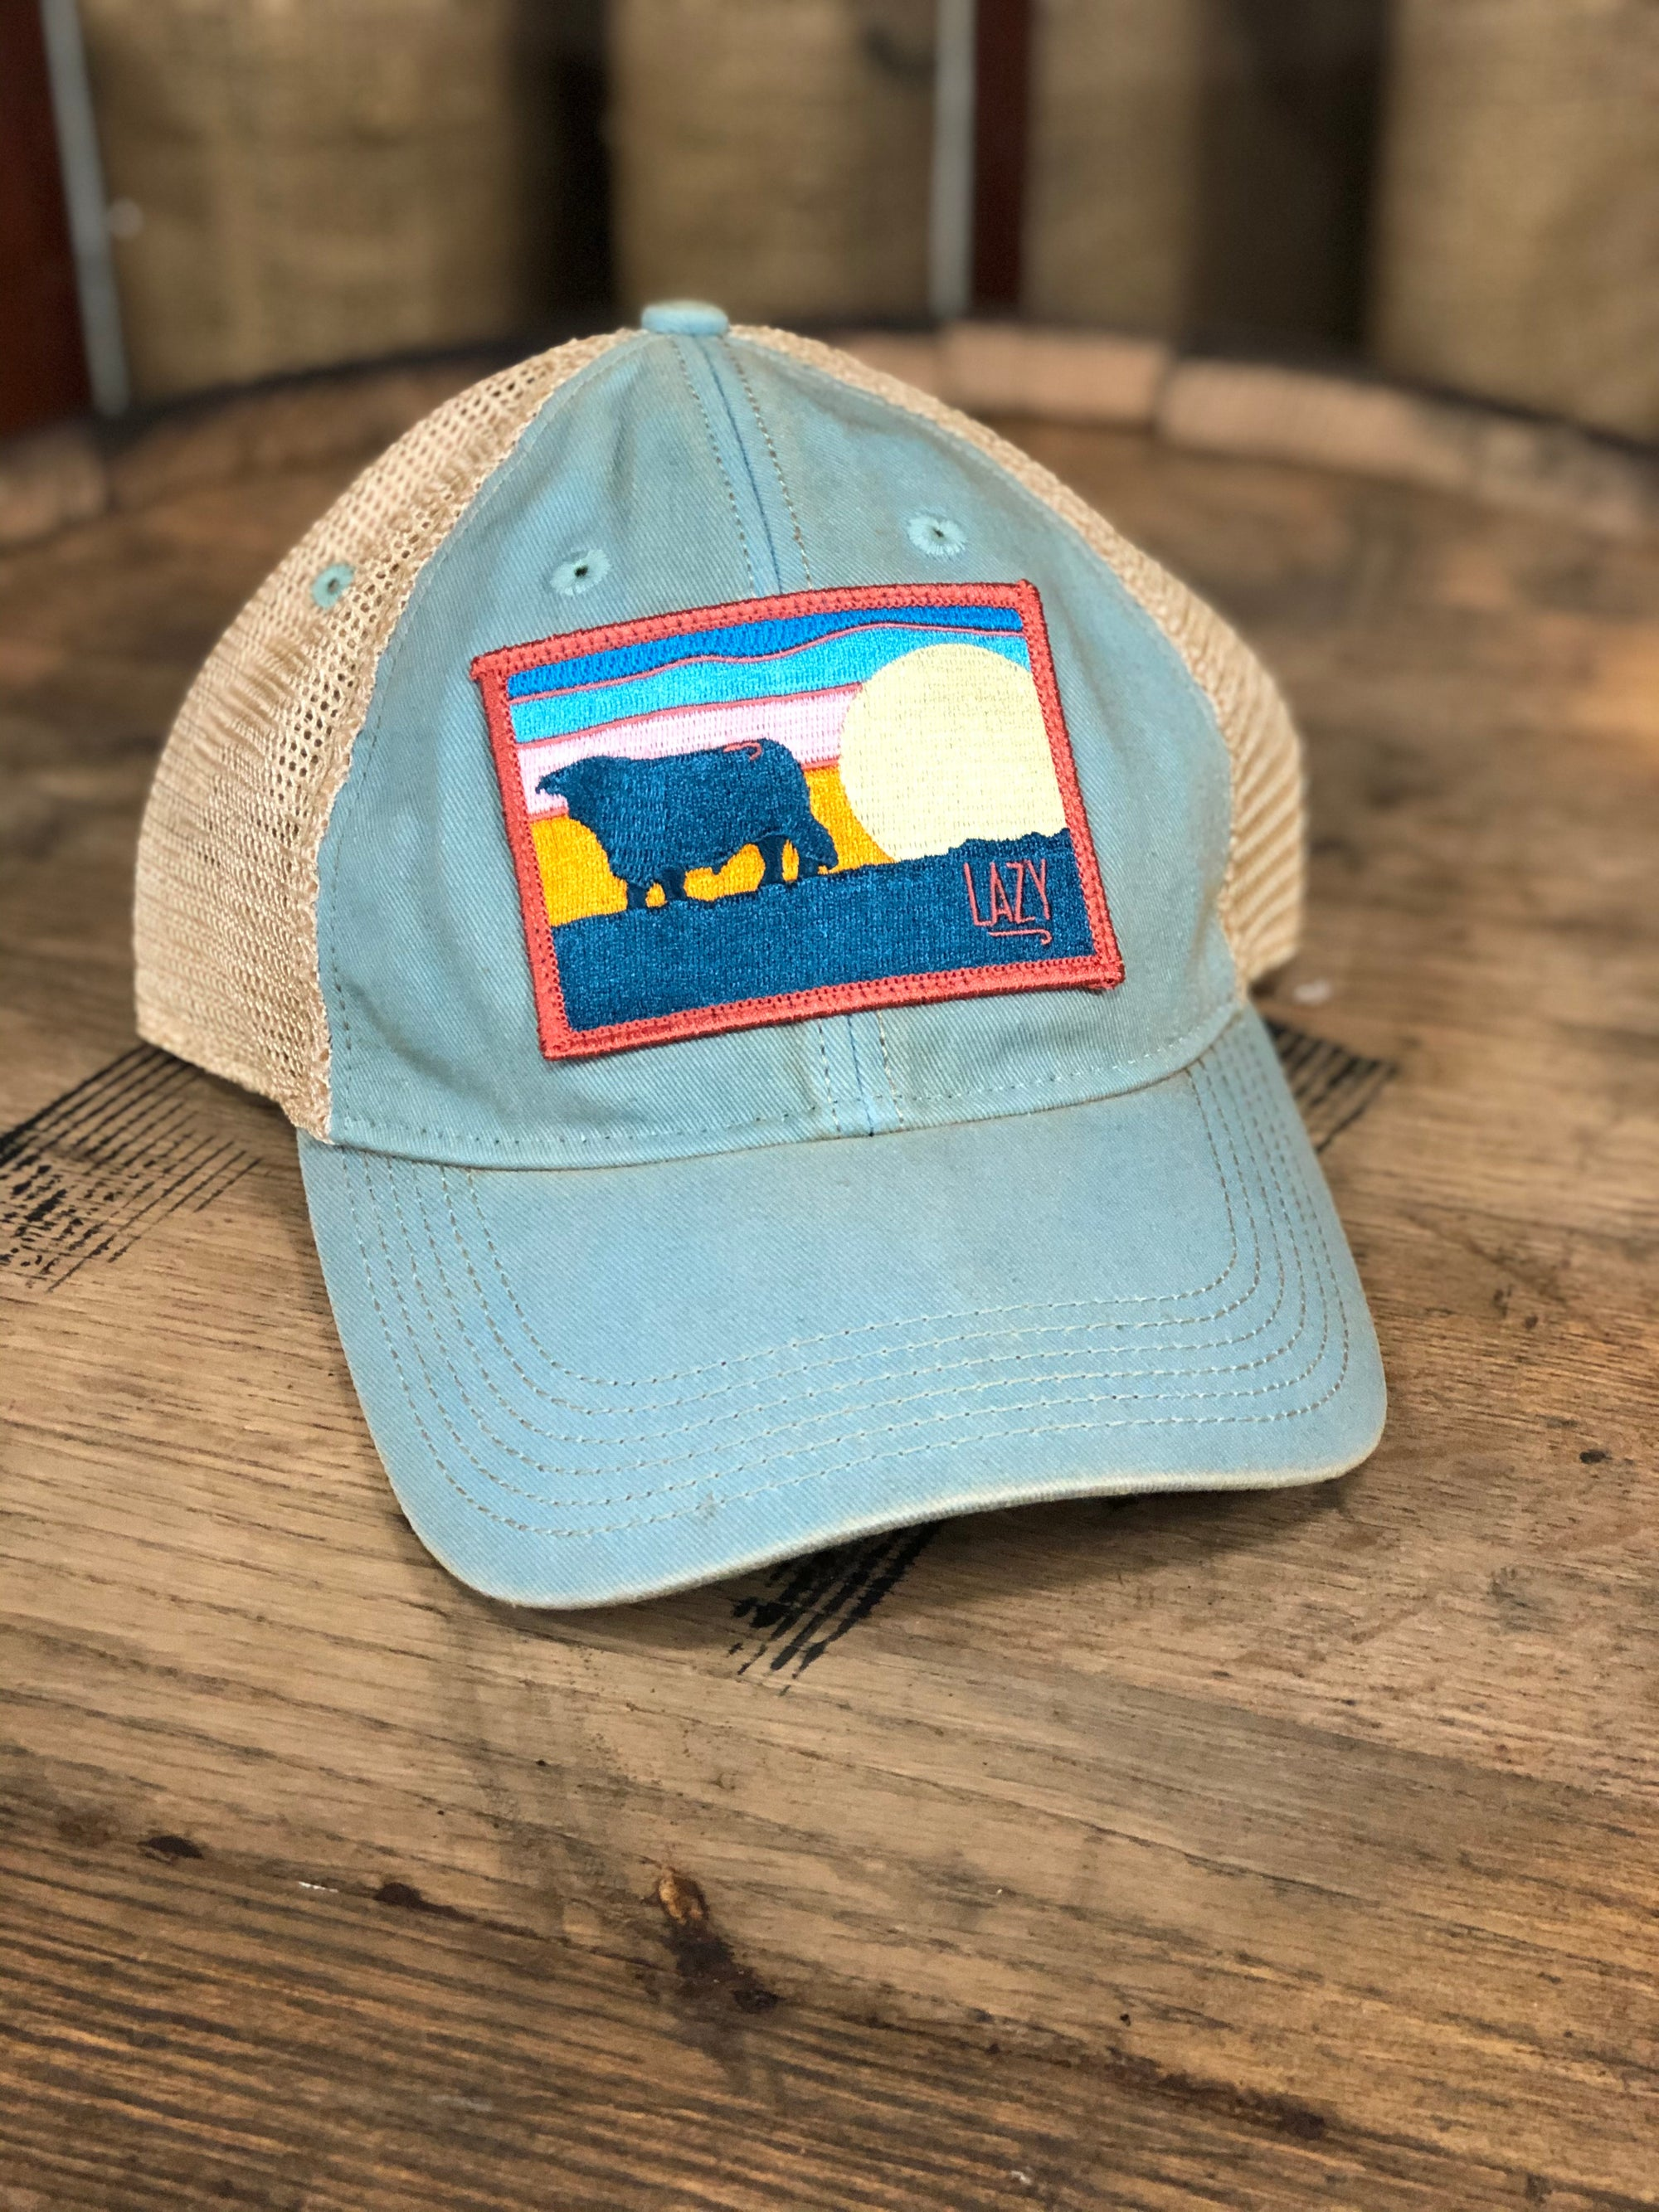 Lazy J Ranch Wear Azul & Tan Unstructured Distressed Hereford Sky Cap - AQUAHMSKY